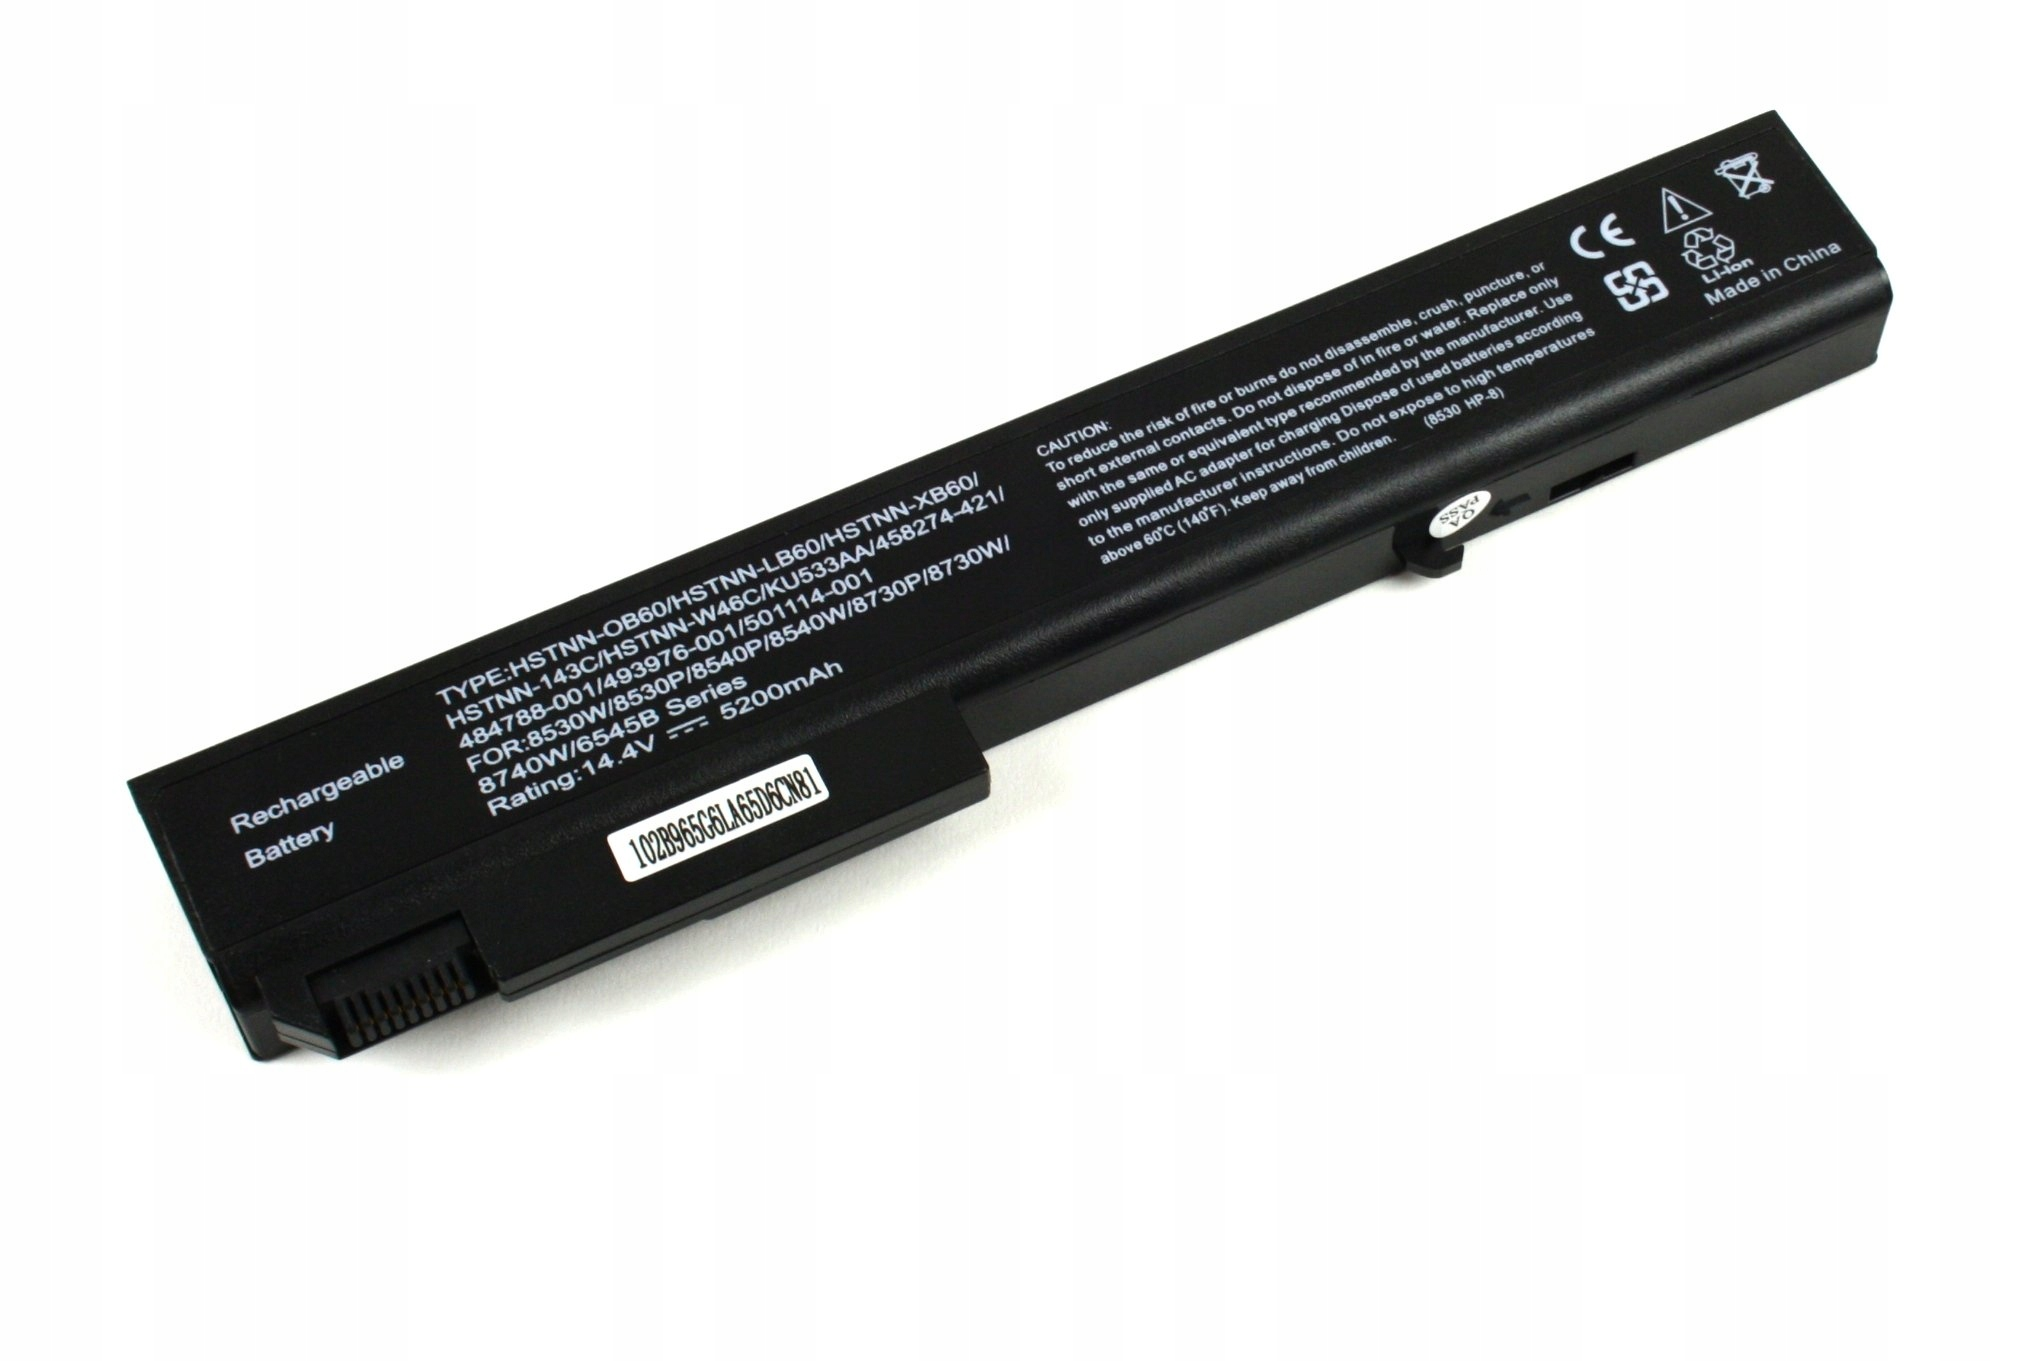 BATERIA AKUMULATOR HP ELITEBOOK 8530P 8540P 8540W 8730W 8740W - Baterie do laptopów